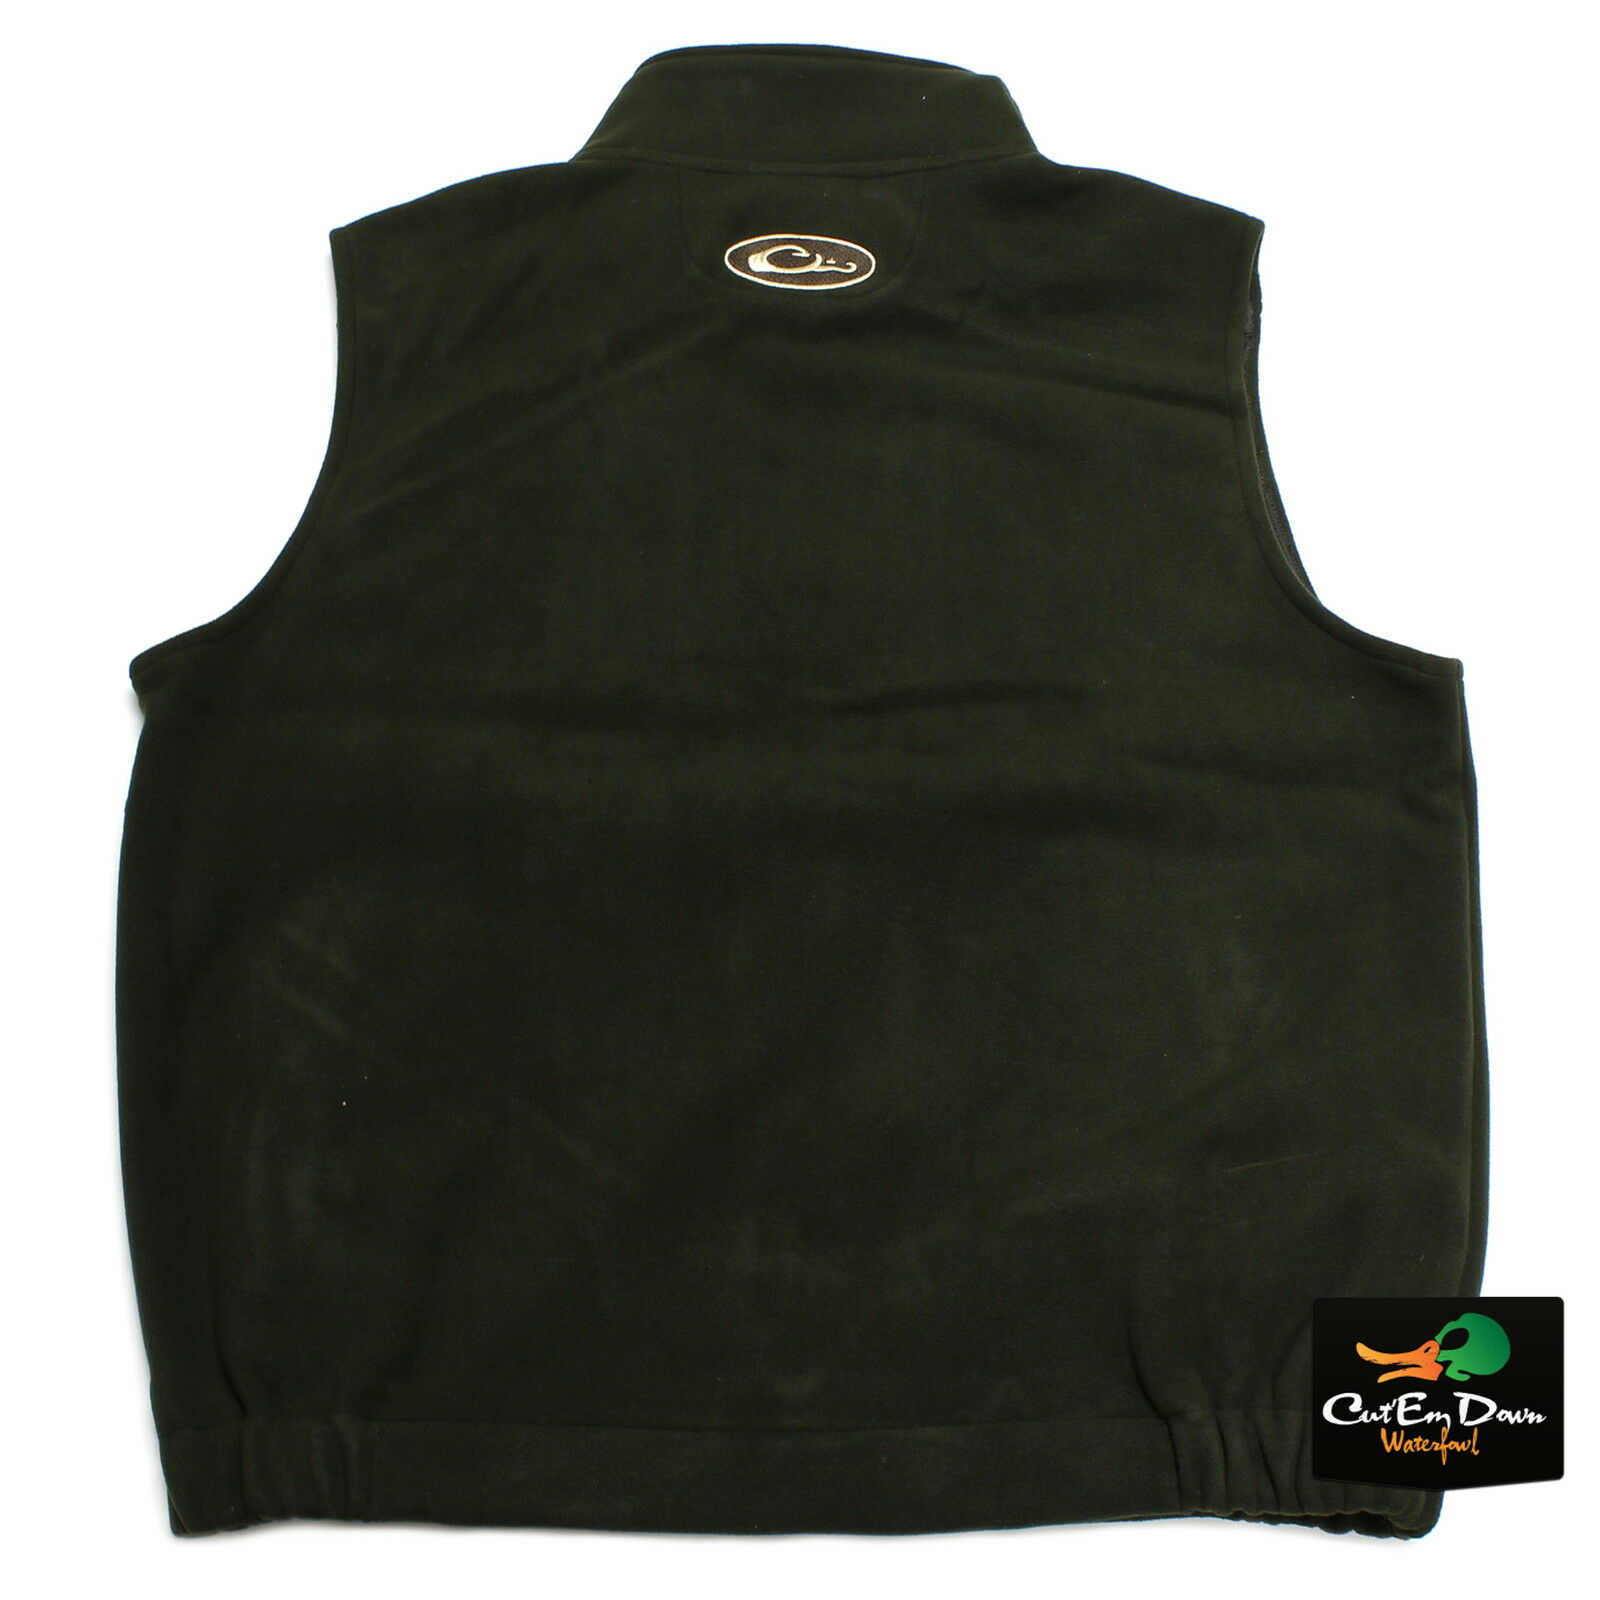 DRAKE WATERFOWL MST WINDPROOF LAYERING FLEECE VEST VEST VEST OLIVE MOSS Grün MEDIUM ccbf3e